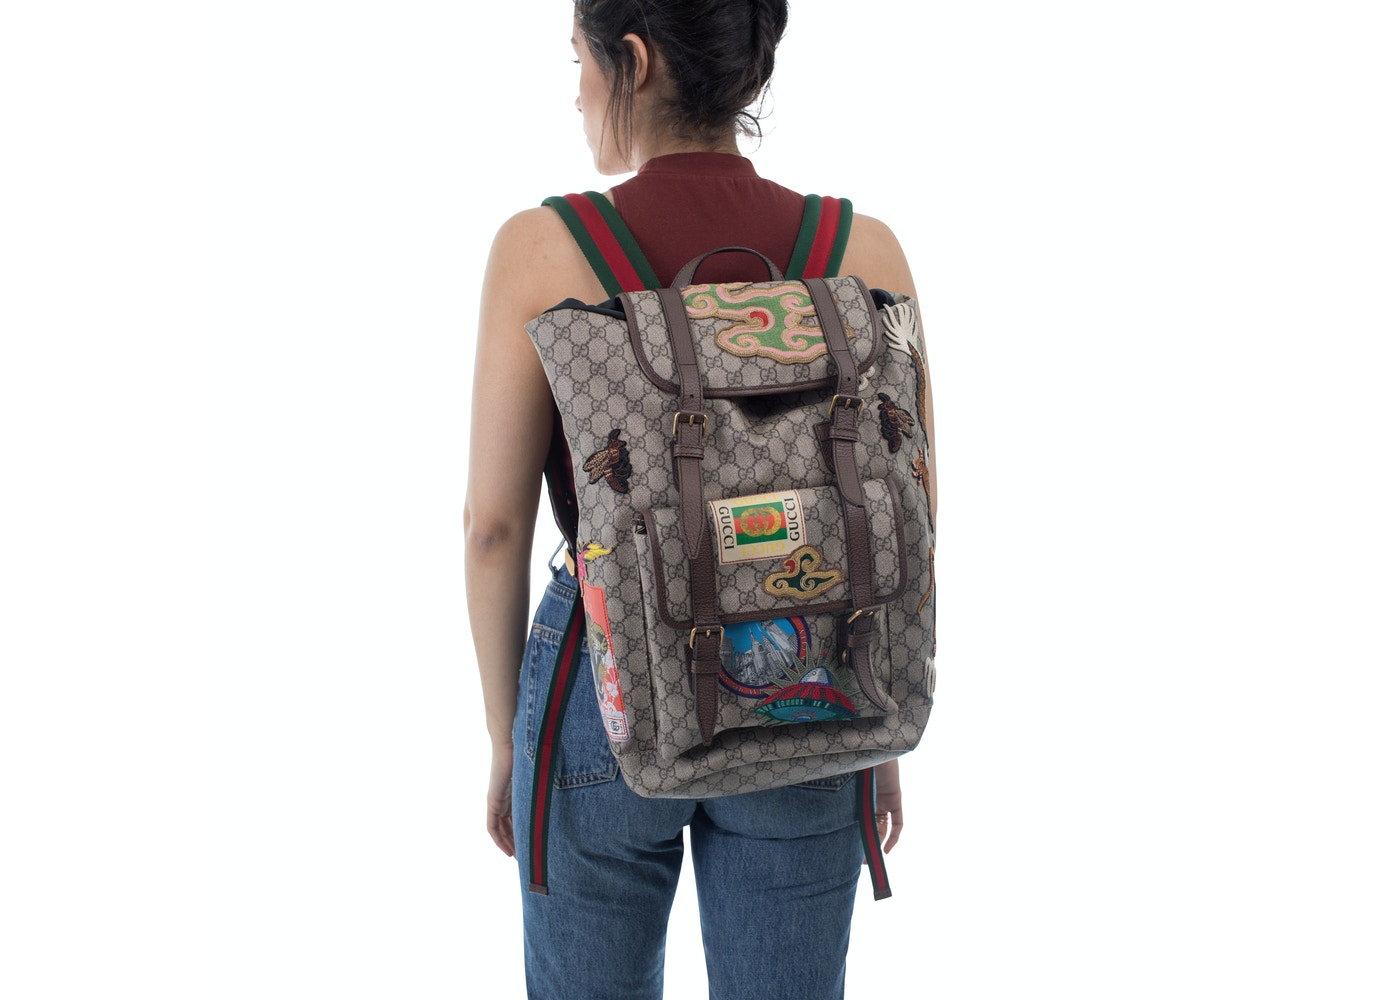 fd2a2a76e5b Gucci Courrier Soft Backpack GG Supreme Embroidered Patches Beige Ebony  Multicolor